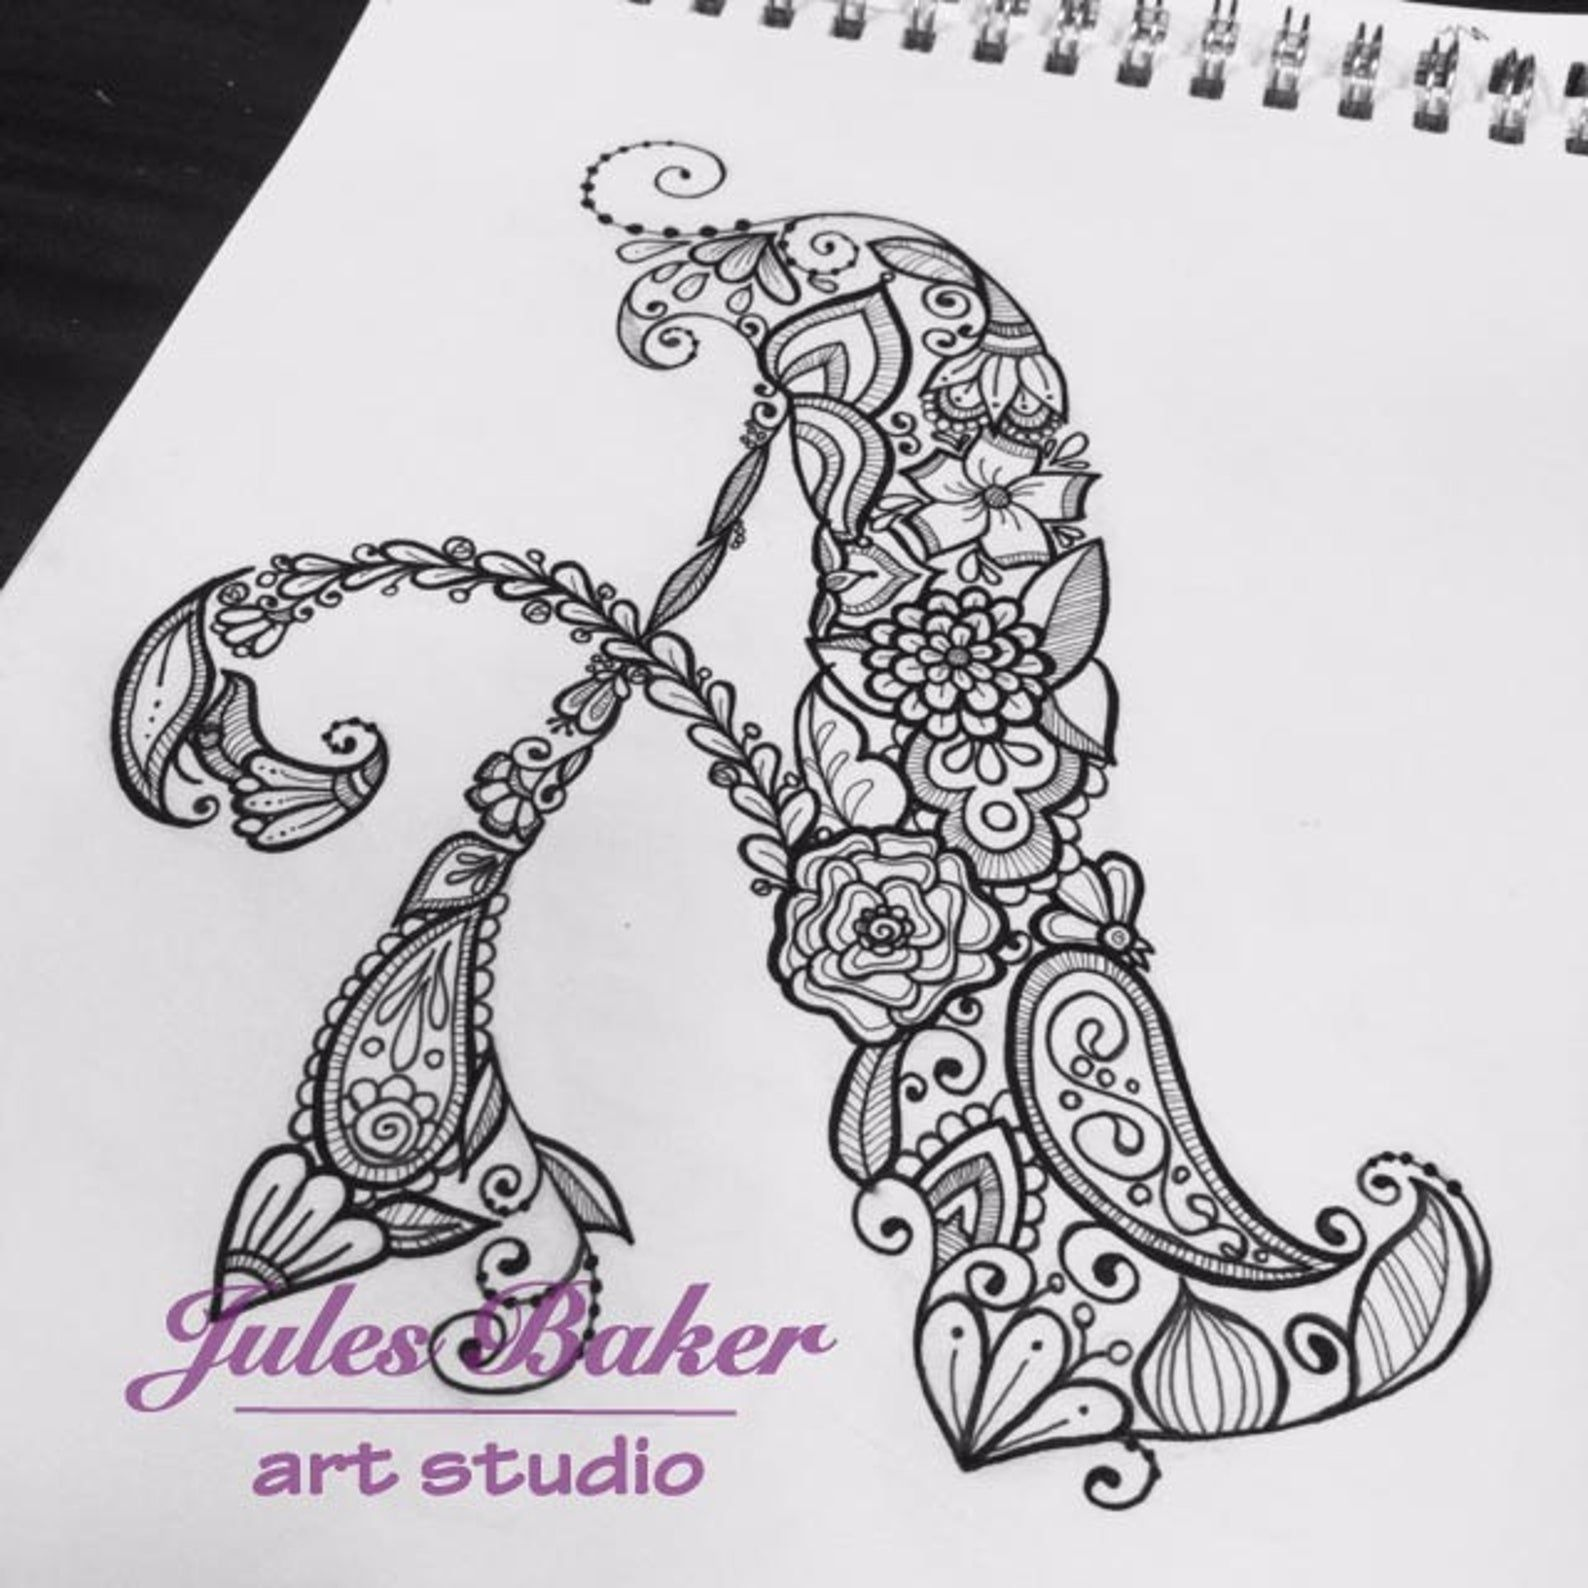 Digital Coloring Page Letter A From Letter Etsy In 2021 Doodle Coloring Lettering Alphabet Alphabet Coloring Pages